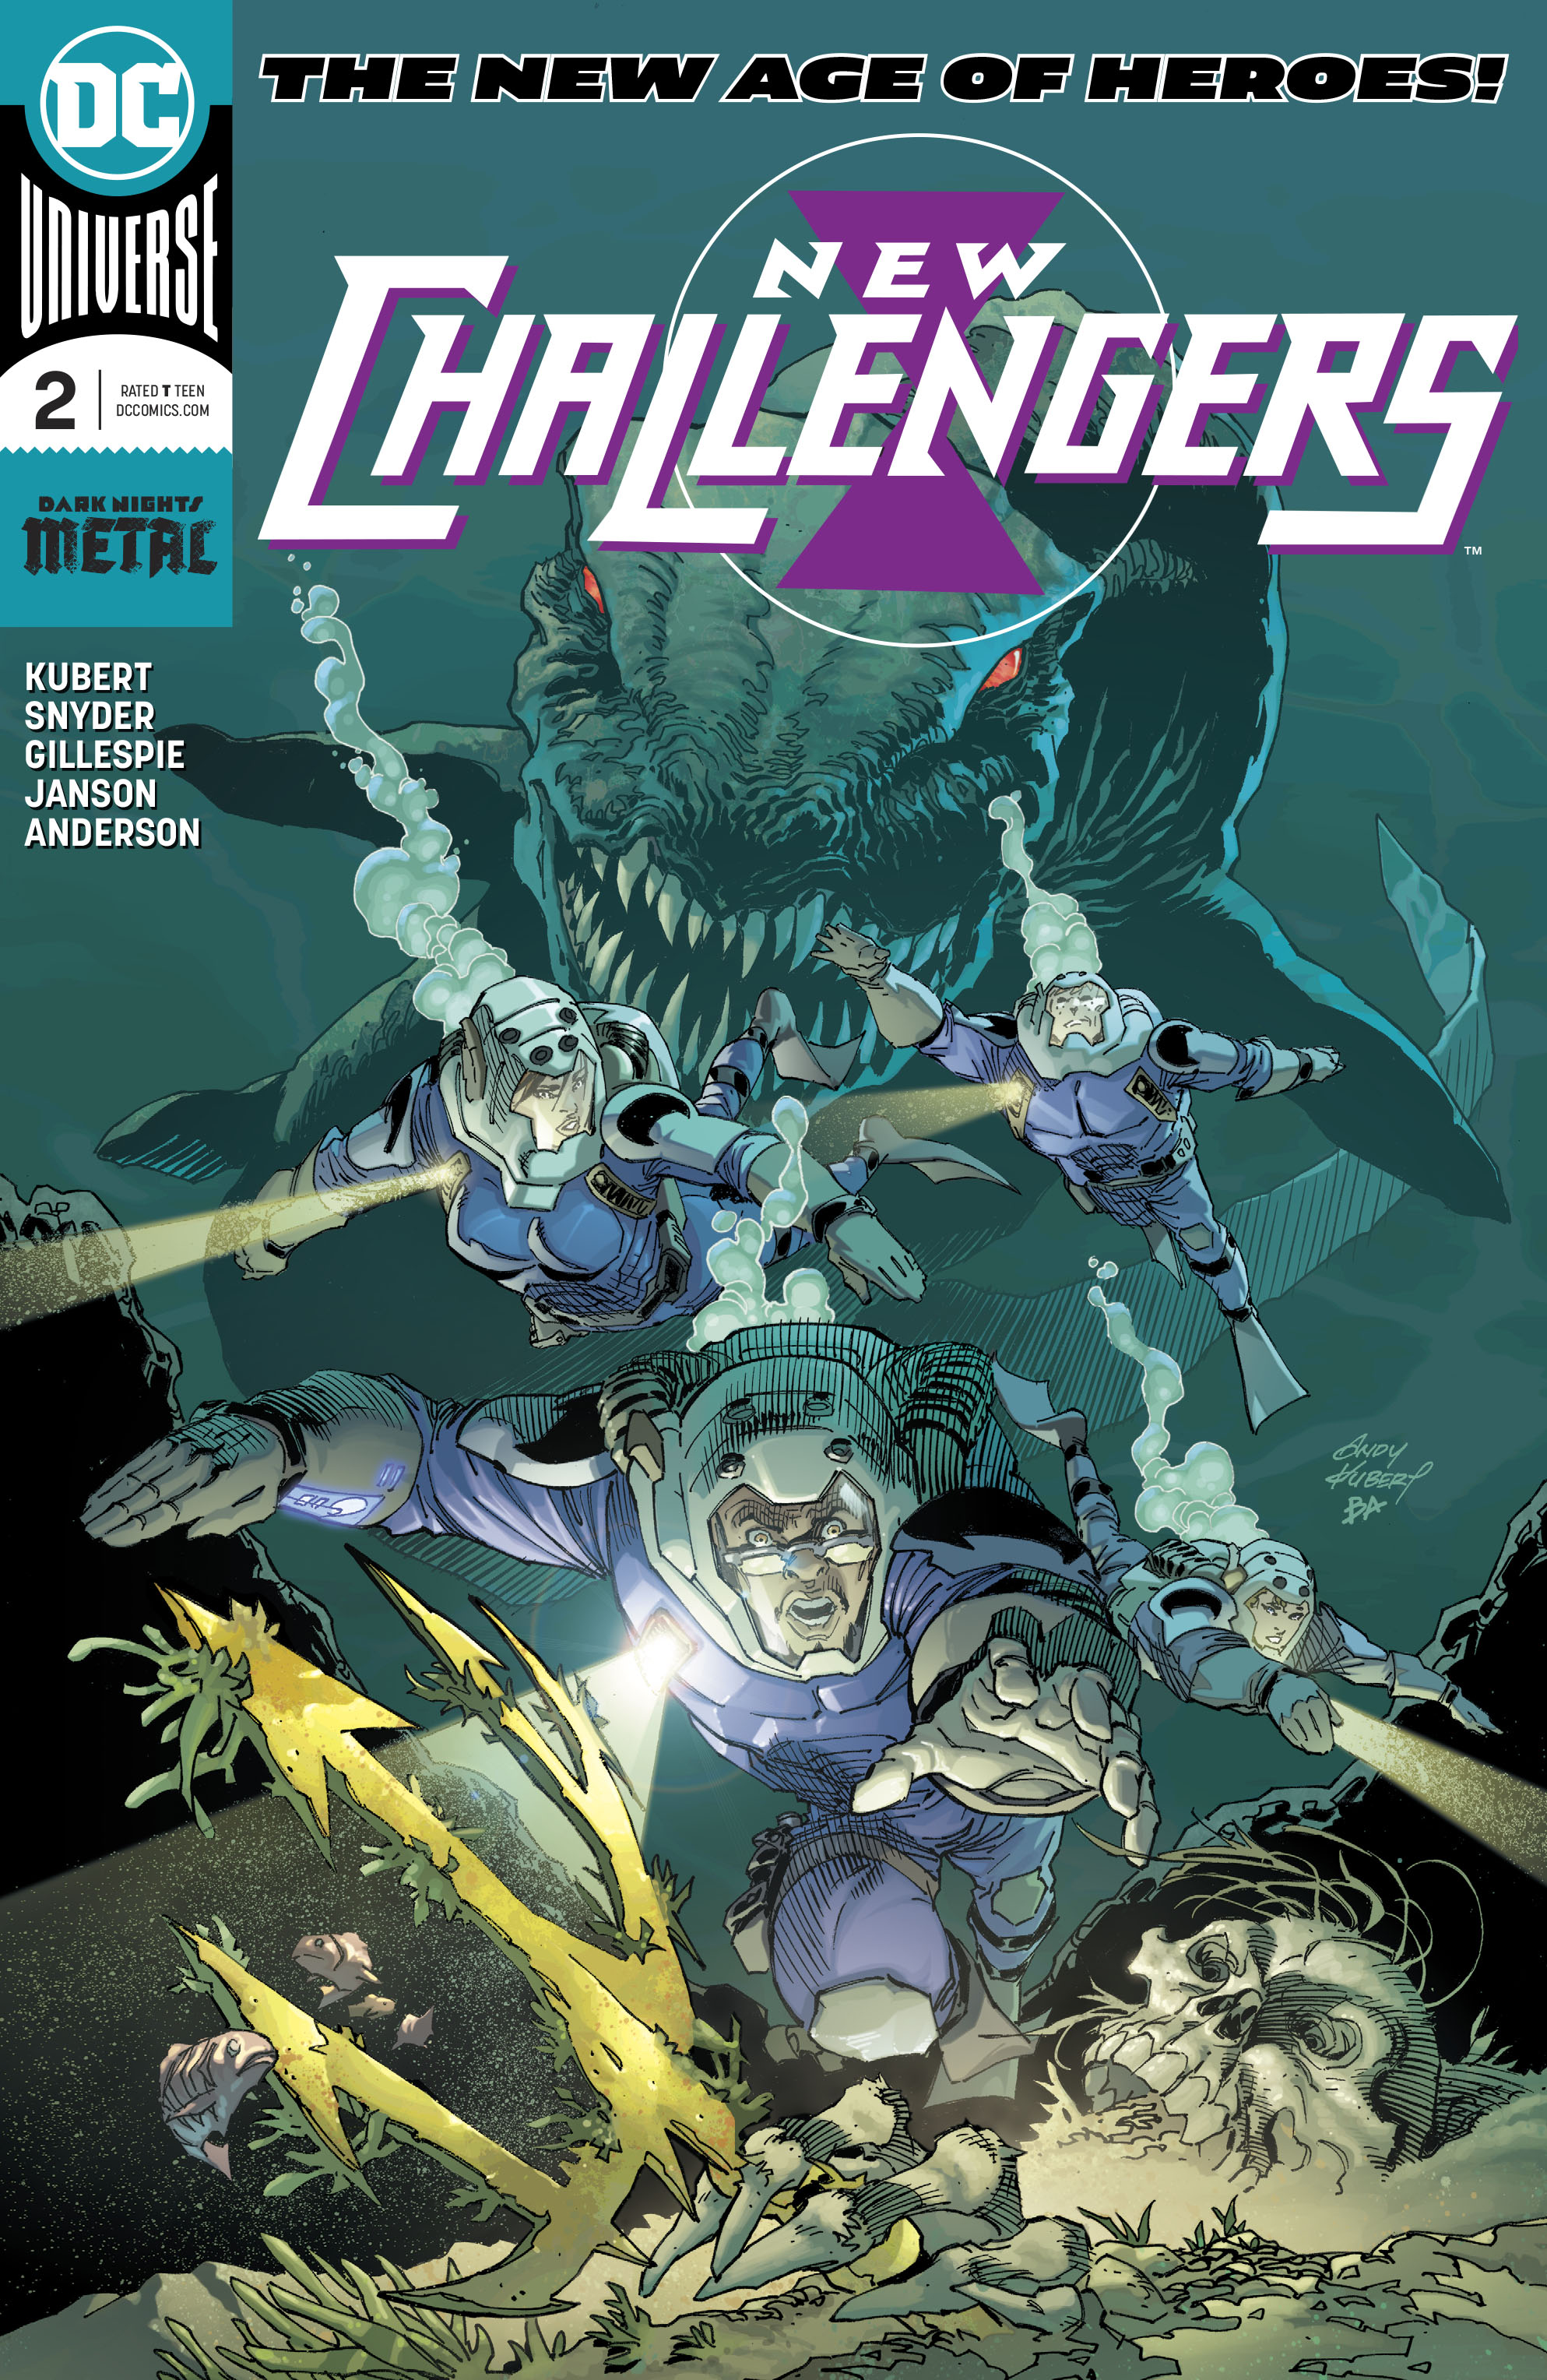 NEW CHALLENGERS #2 (OF 6)